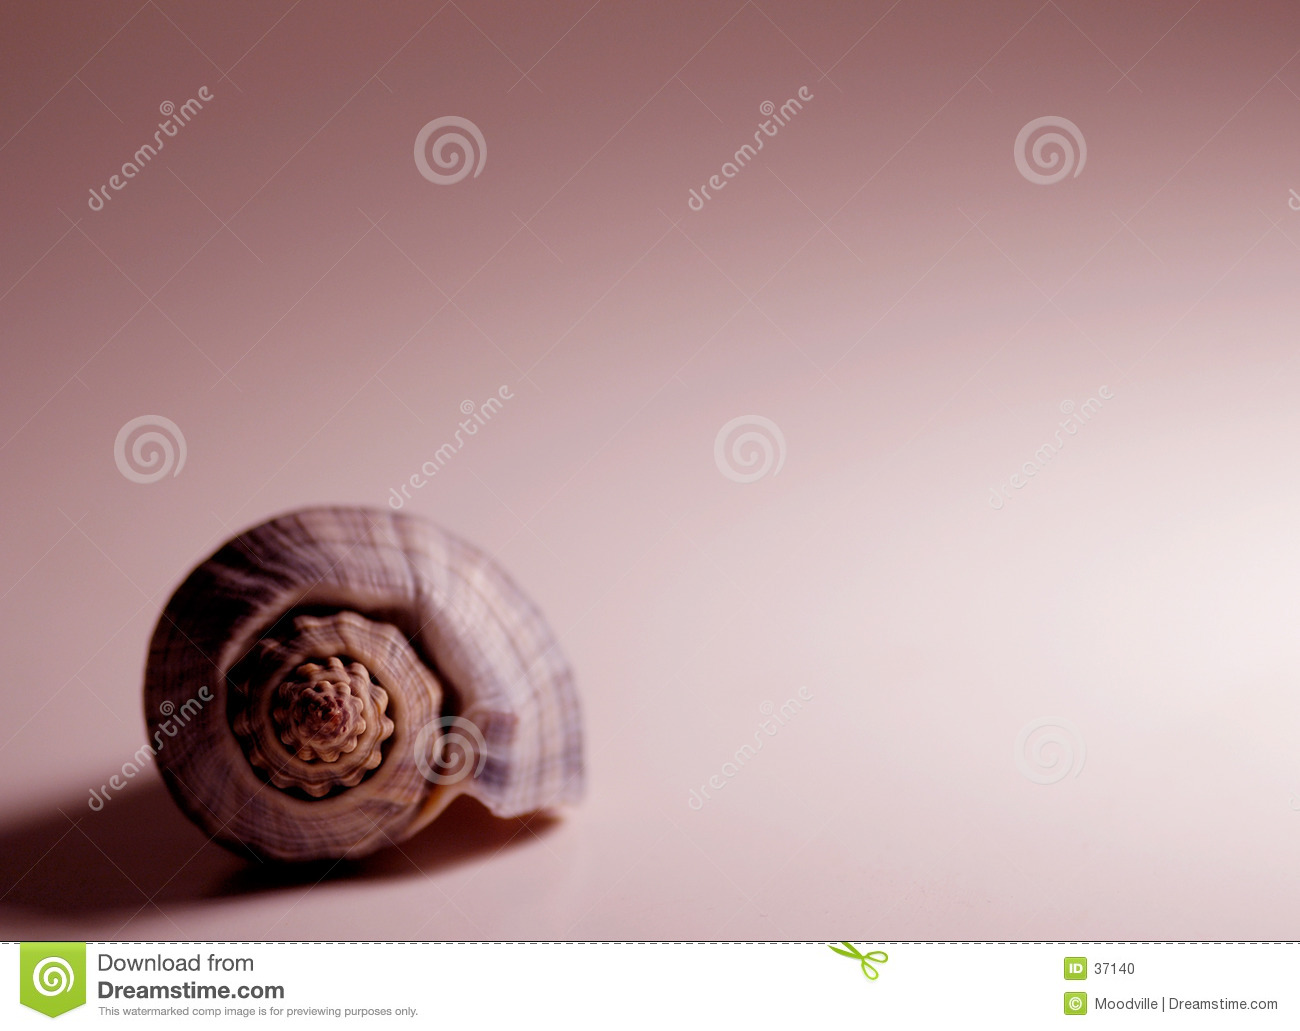 Shell in rood